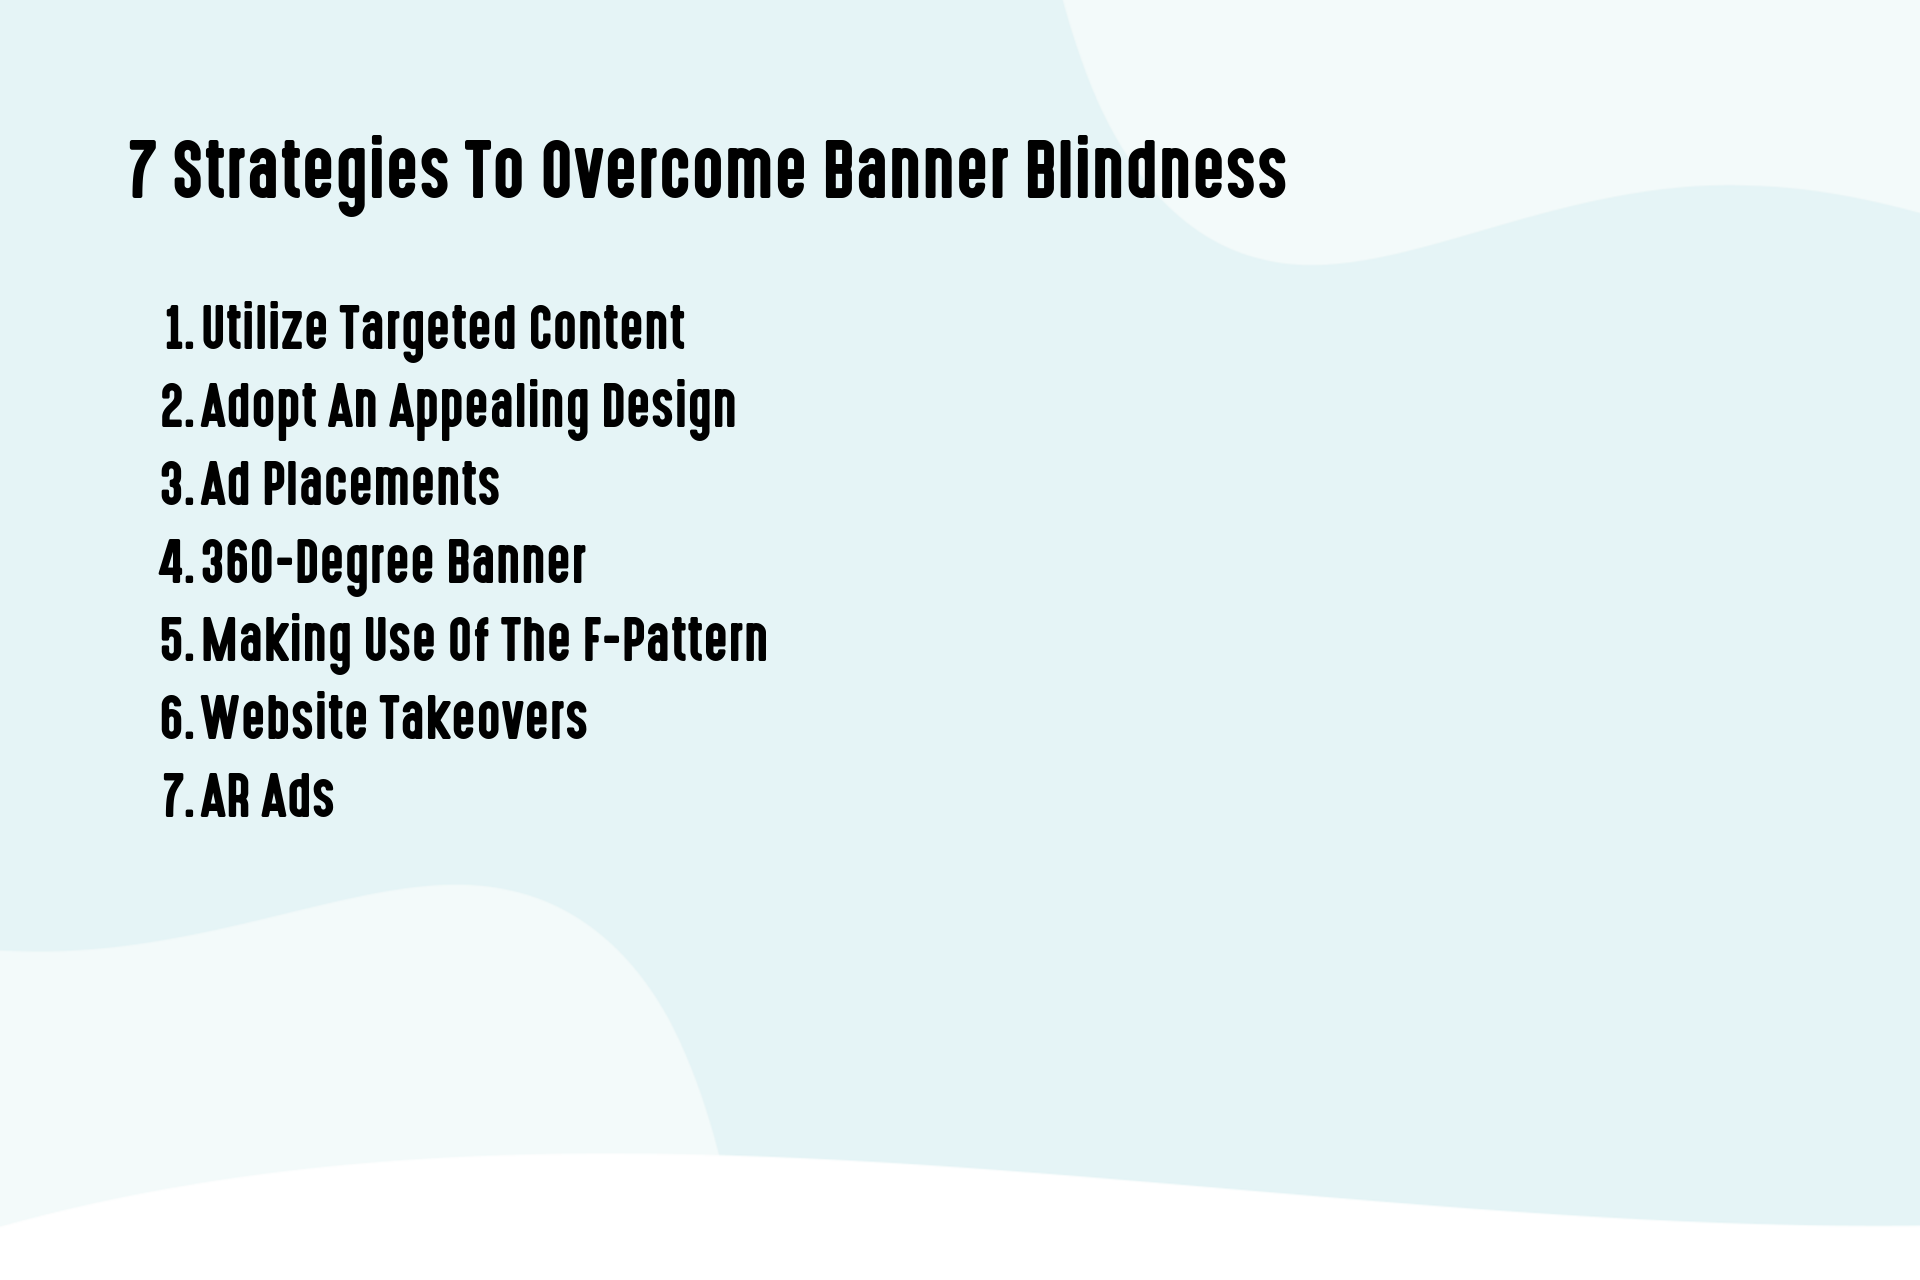 7 Strategies To Overcome Banner Blindness